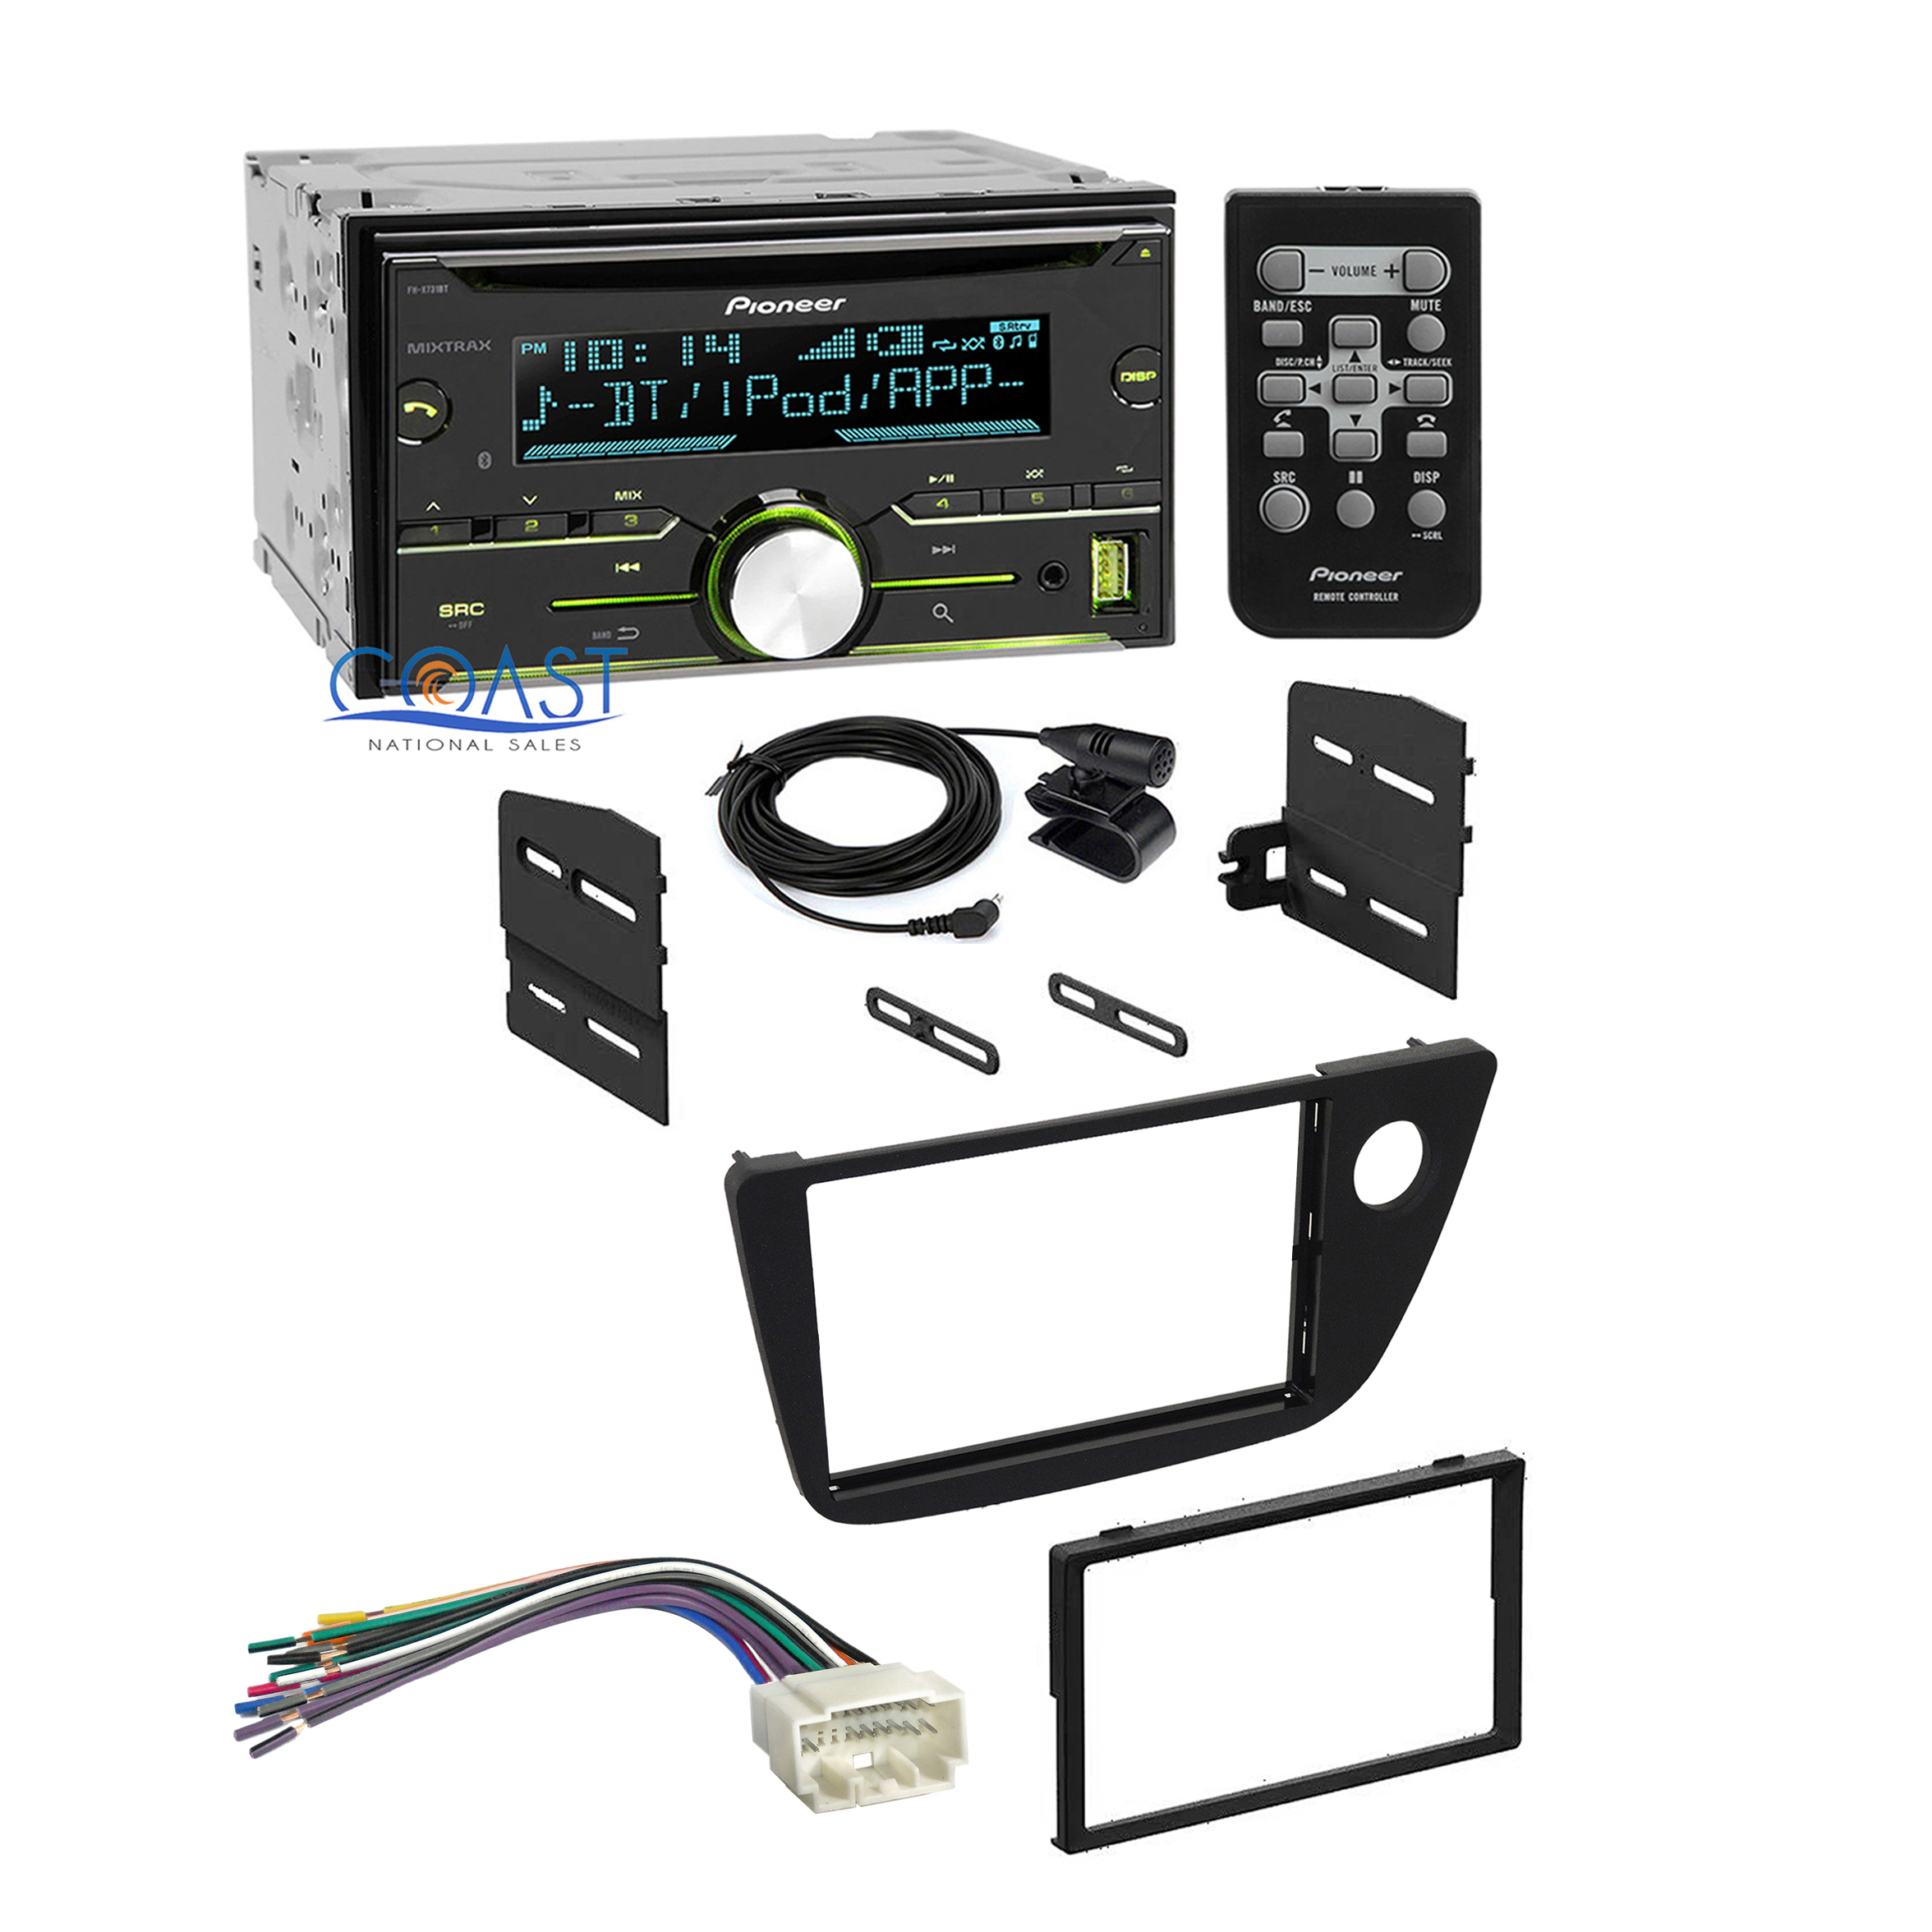 Stereo Wiring Harness 2006 Diagrams Ford Adapter 2 Pioneer Radio Double Din Dash Kit Diagram Explorer 2004 Buick Rendezvous